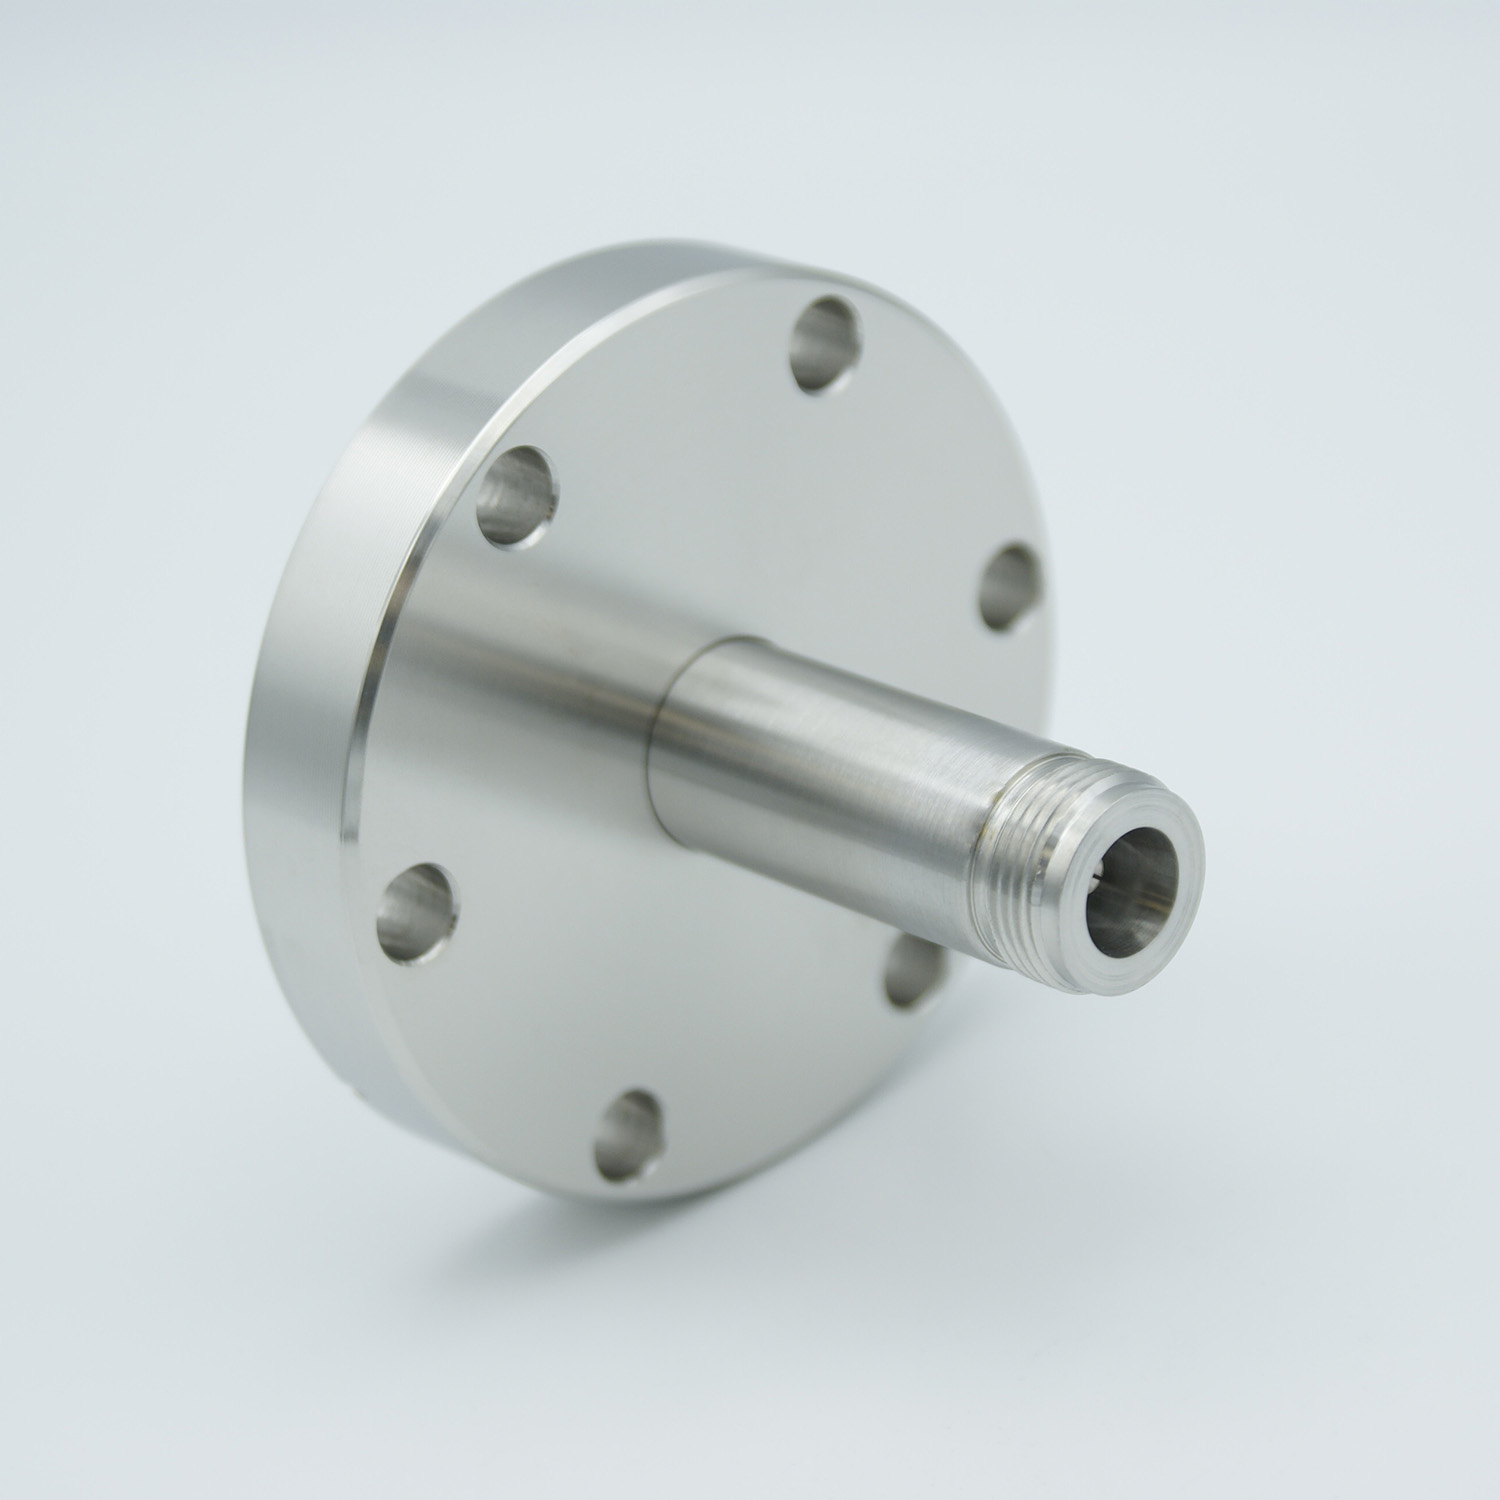 Type-N feedthrough single ended 500VDC / 3 Amp, air side connector included DN40CF flange